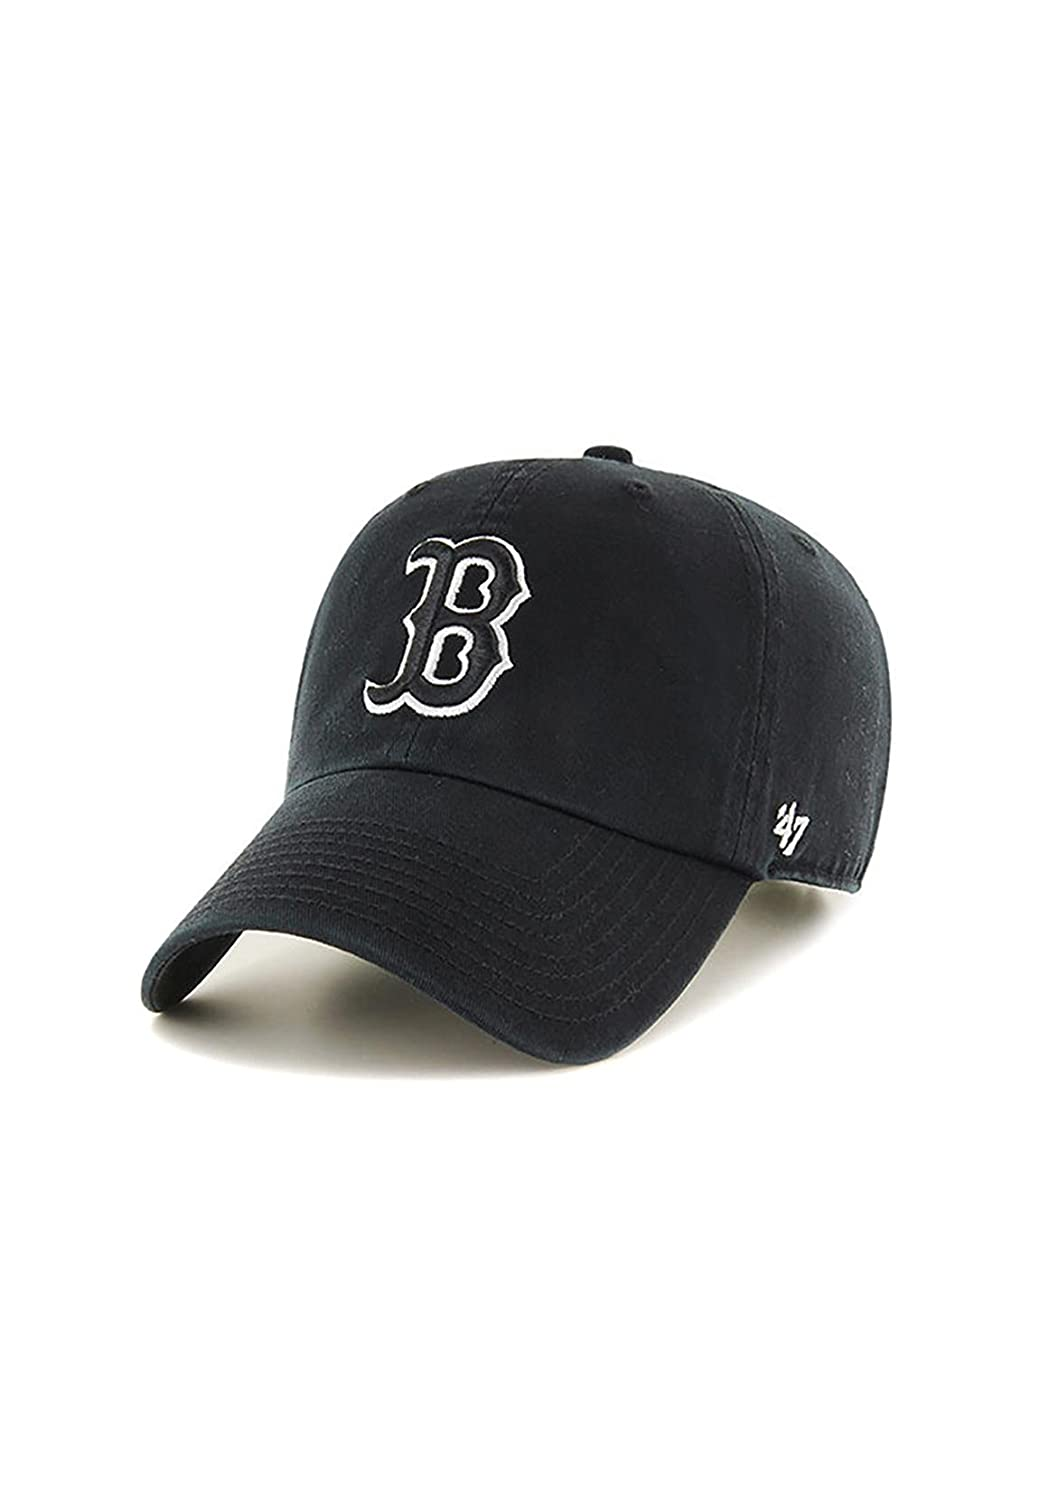 '47 Brand Clean up Red Sox Strapback Cap Cap Base Cap B-RGW02GWSNL-BKH